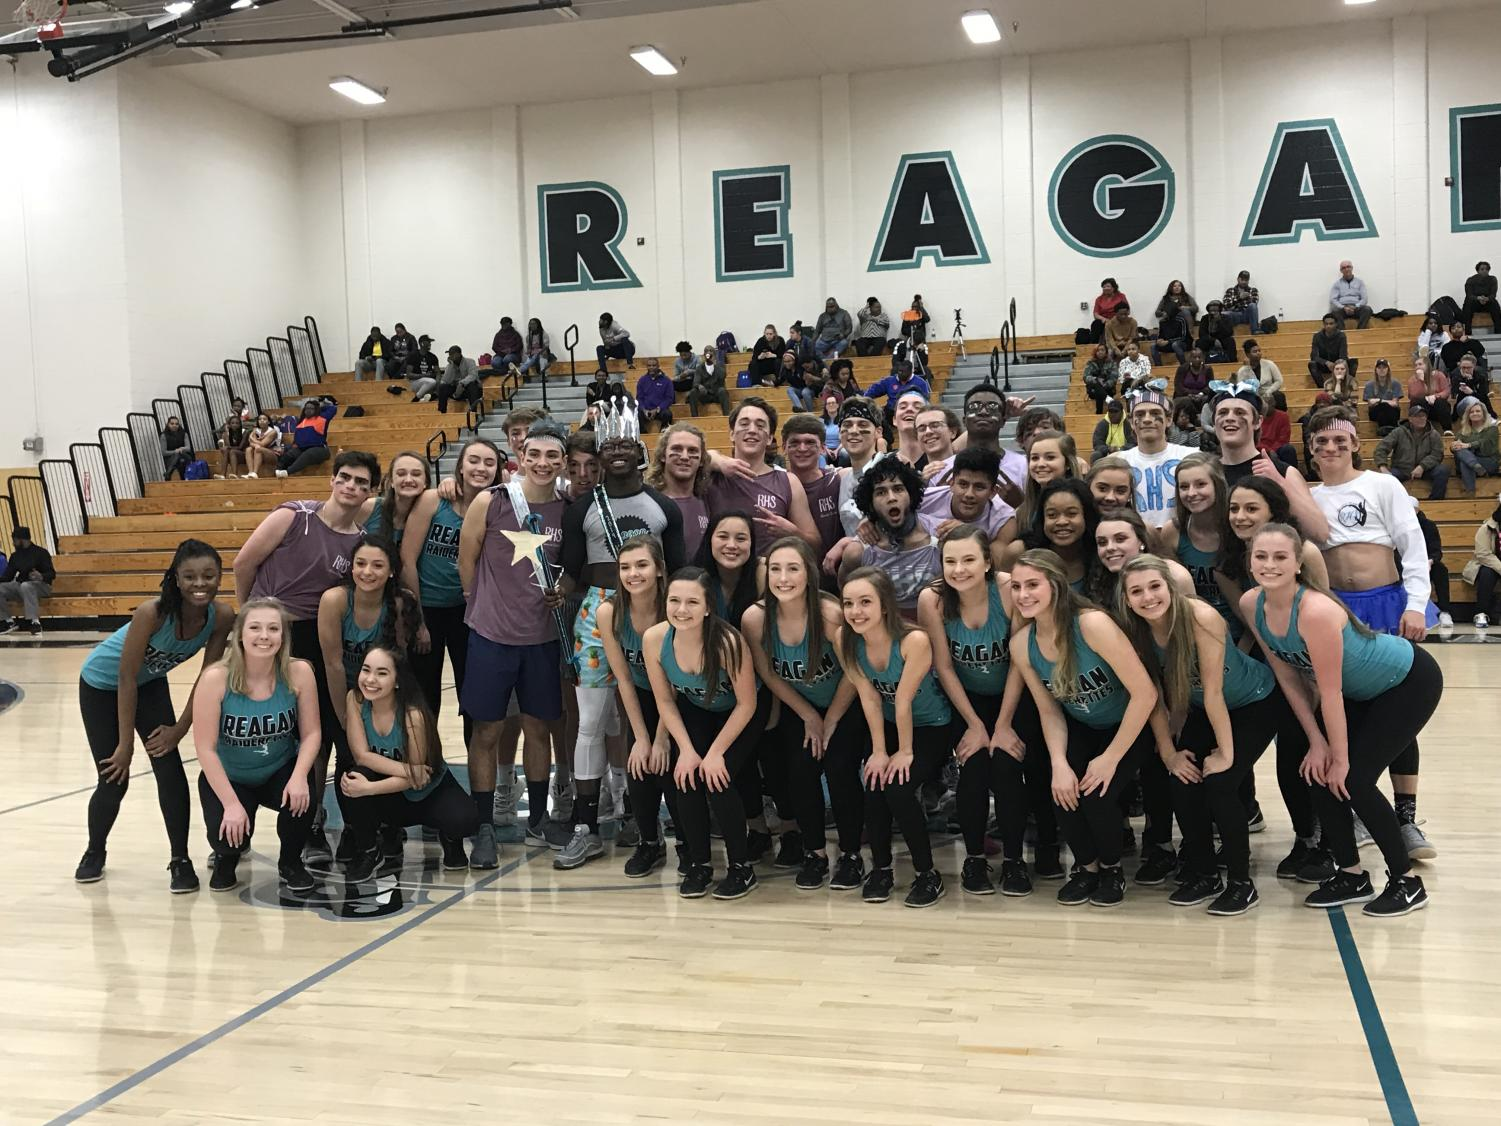 The new King and Prince pose with the other nominees and Raiderettes. This year they raised $4,209.28 for St. Jude's Children's Hospital.